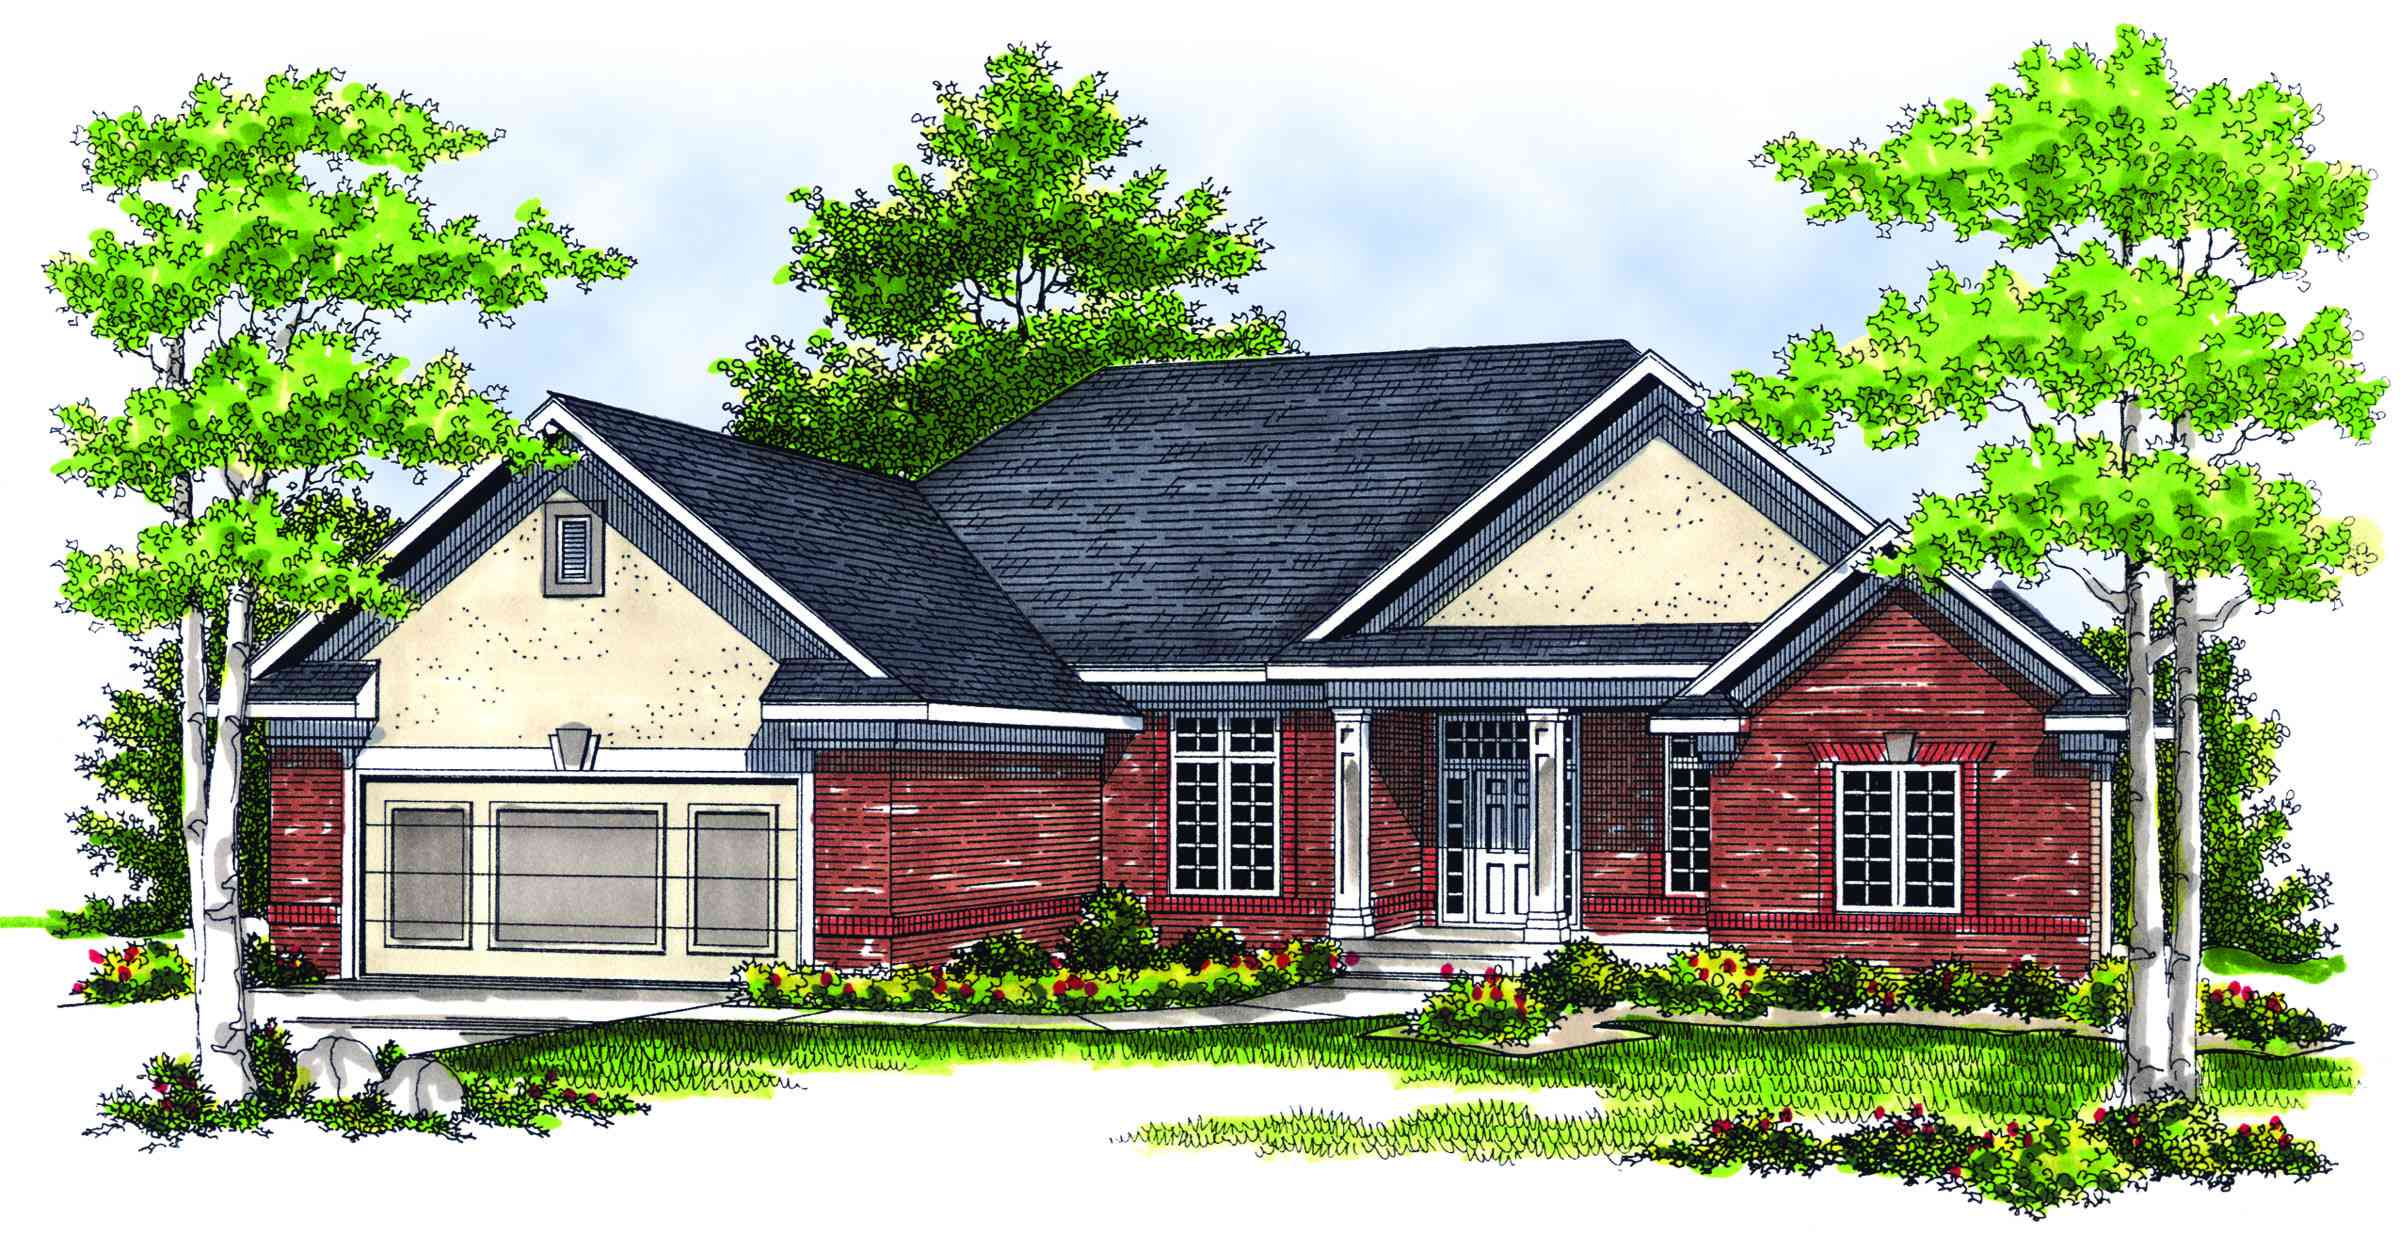 Traditional ranch with three season porch 89143ah for Traditional ranch home plans